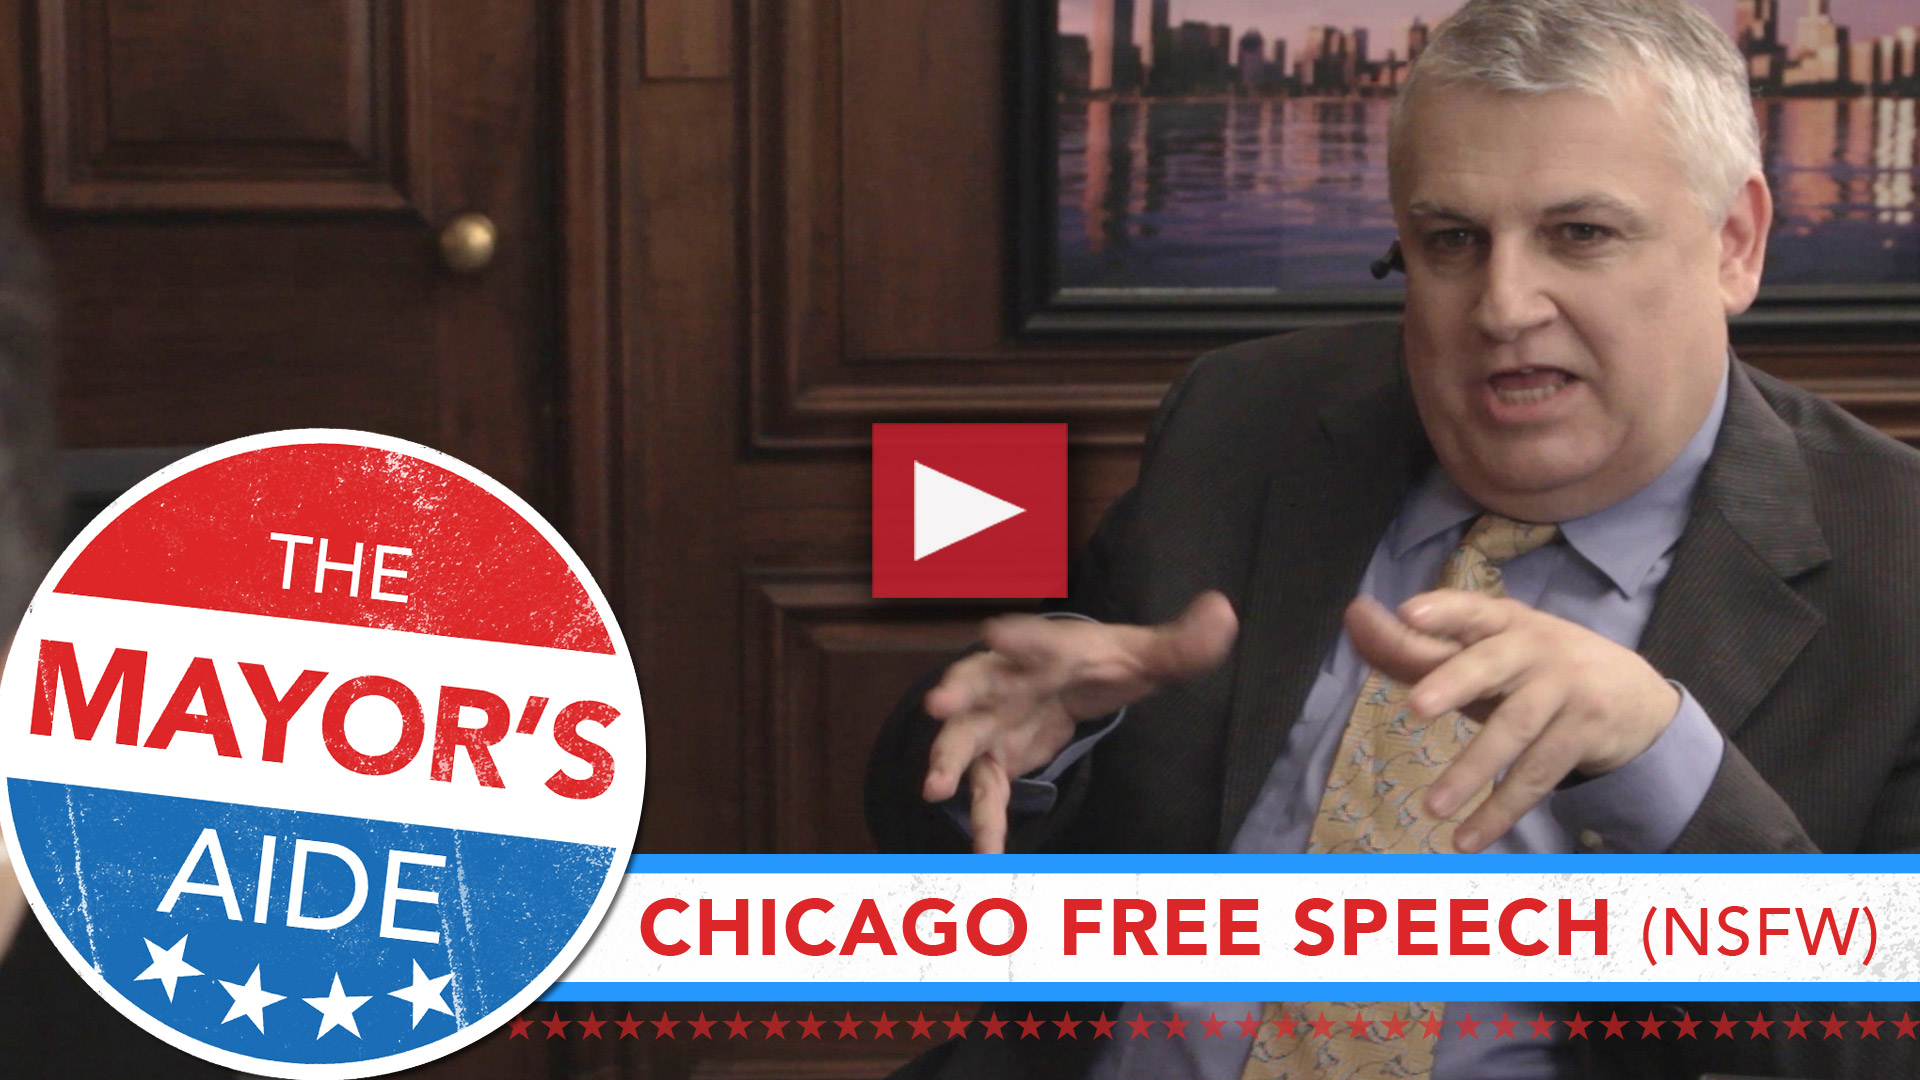 The Mayor's Aide – Chicago Free Speech (NSFW)